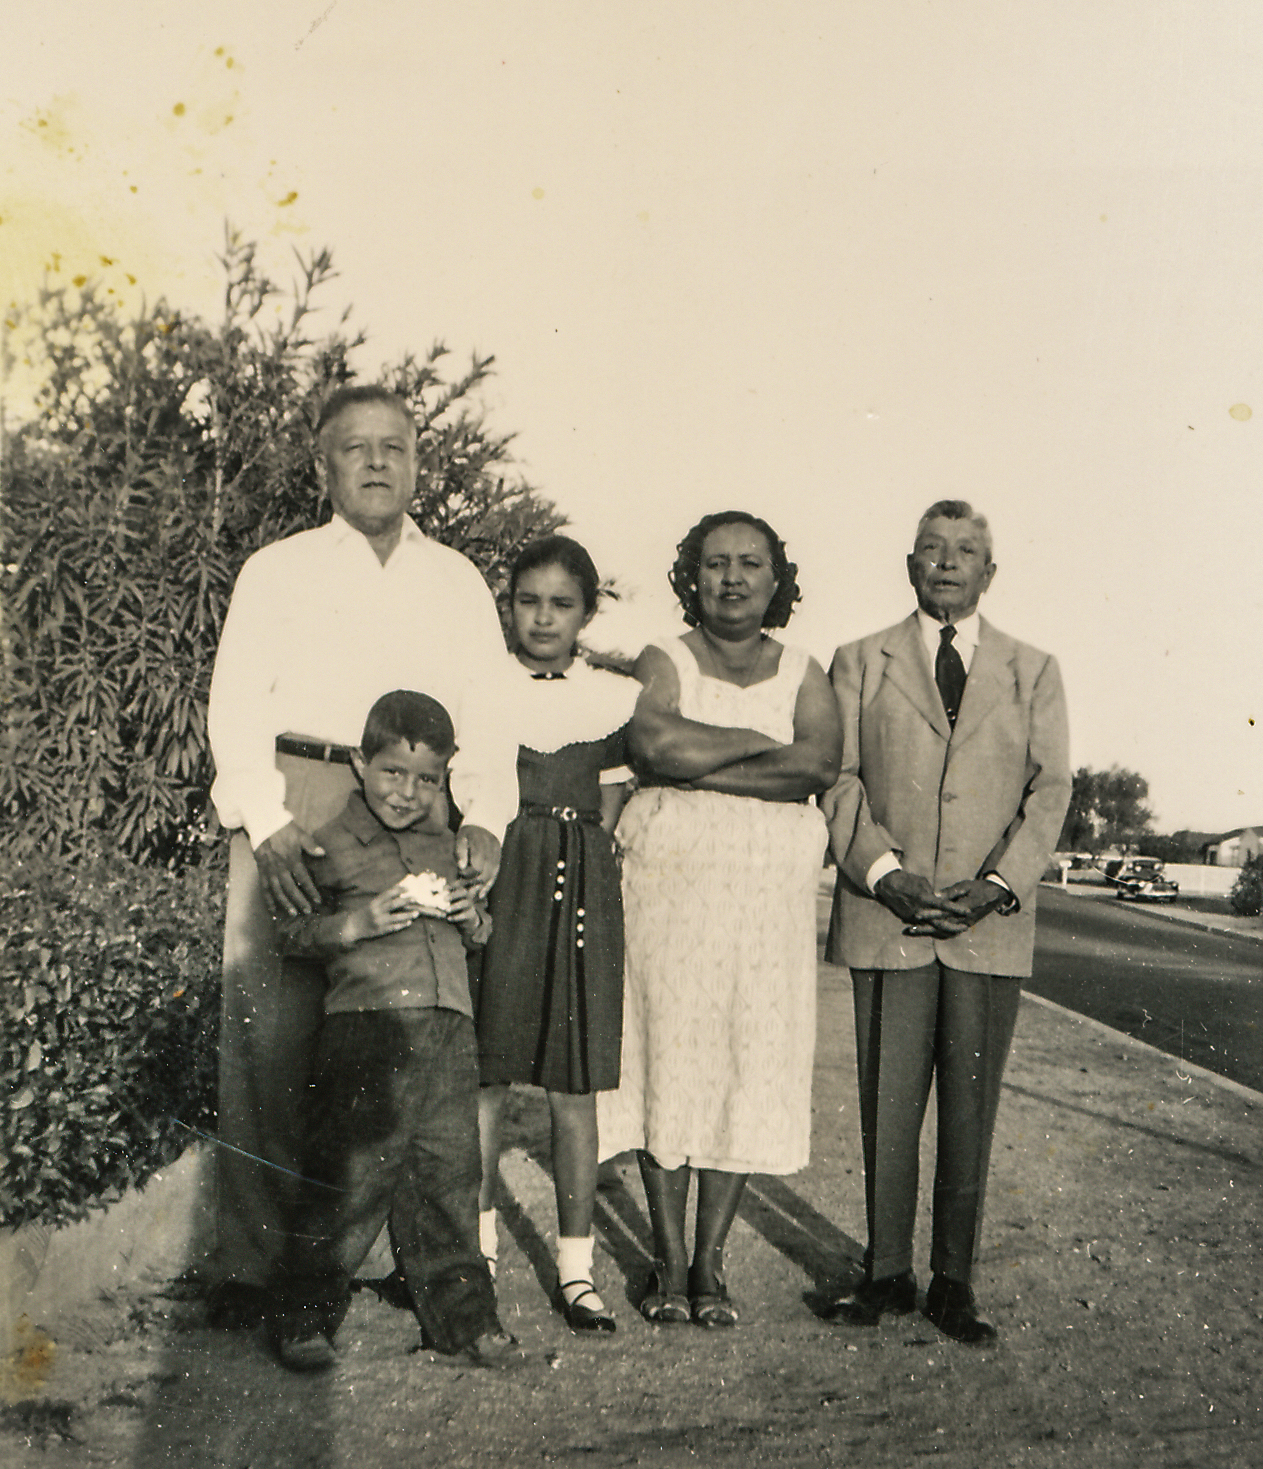 Sort ID: 1954-01 Image ID: B083 (est) Year: 1954. Photo content: Dad, Fred, Margaret, mother, grandpa Mucio. Location of photo: On the street in front of 1225 E Edison St, Tucson.